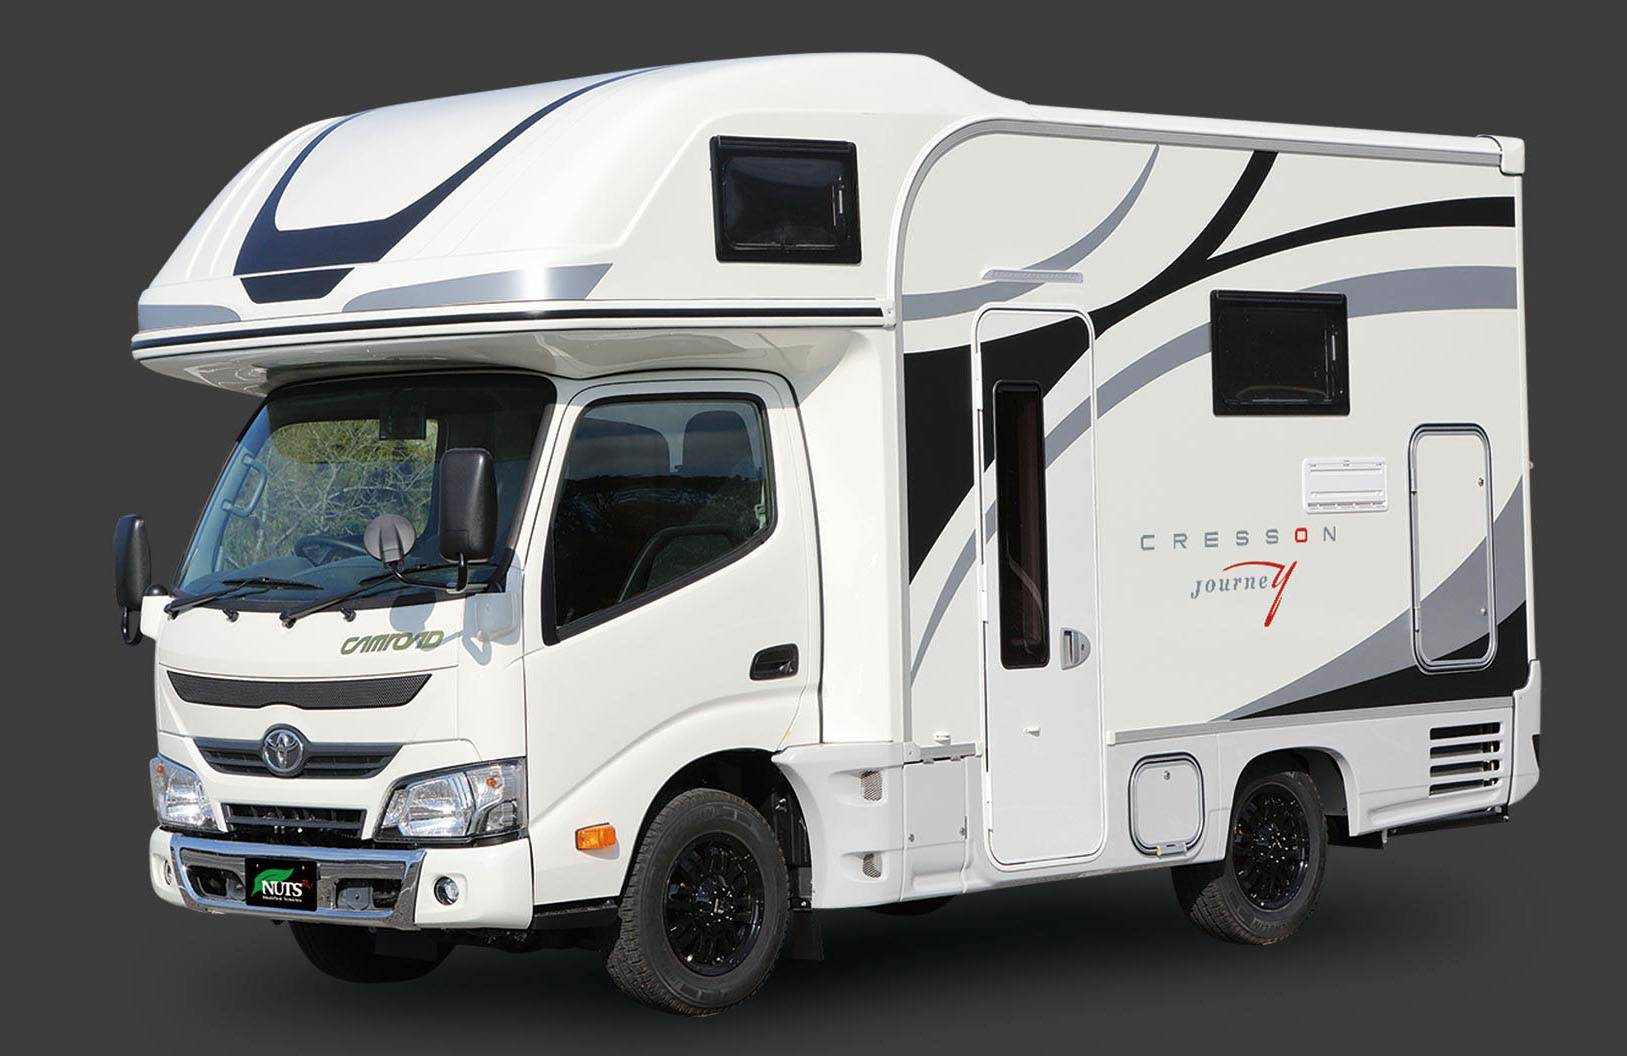 Demand for recreational vehicles is expected to grow further, as they are also increasingly used for remote work amid the pandemic and during natural disasters. | NUTS RV CO. / VIA KYODO